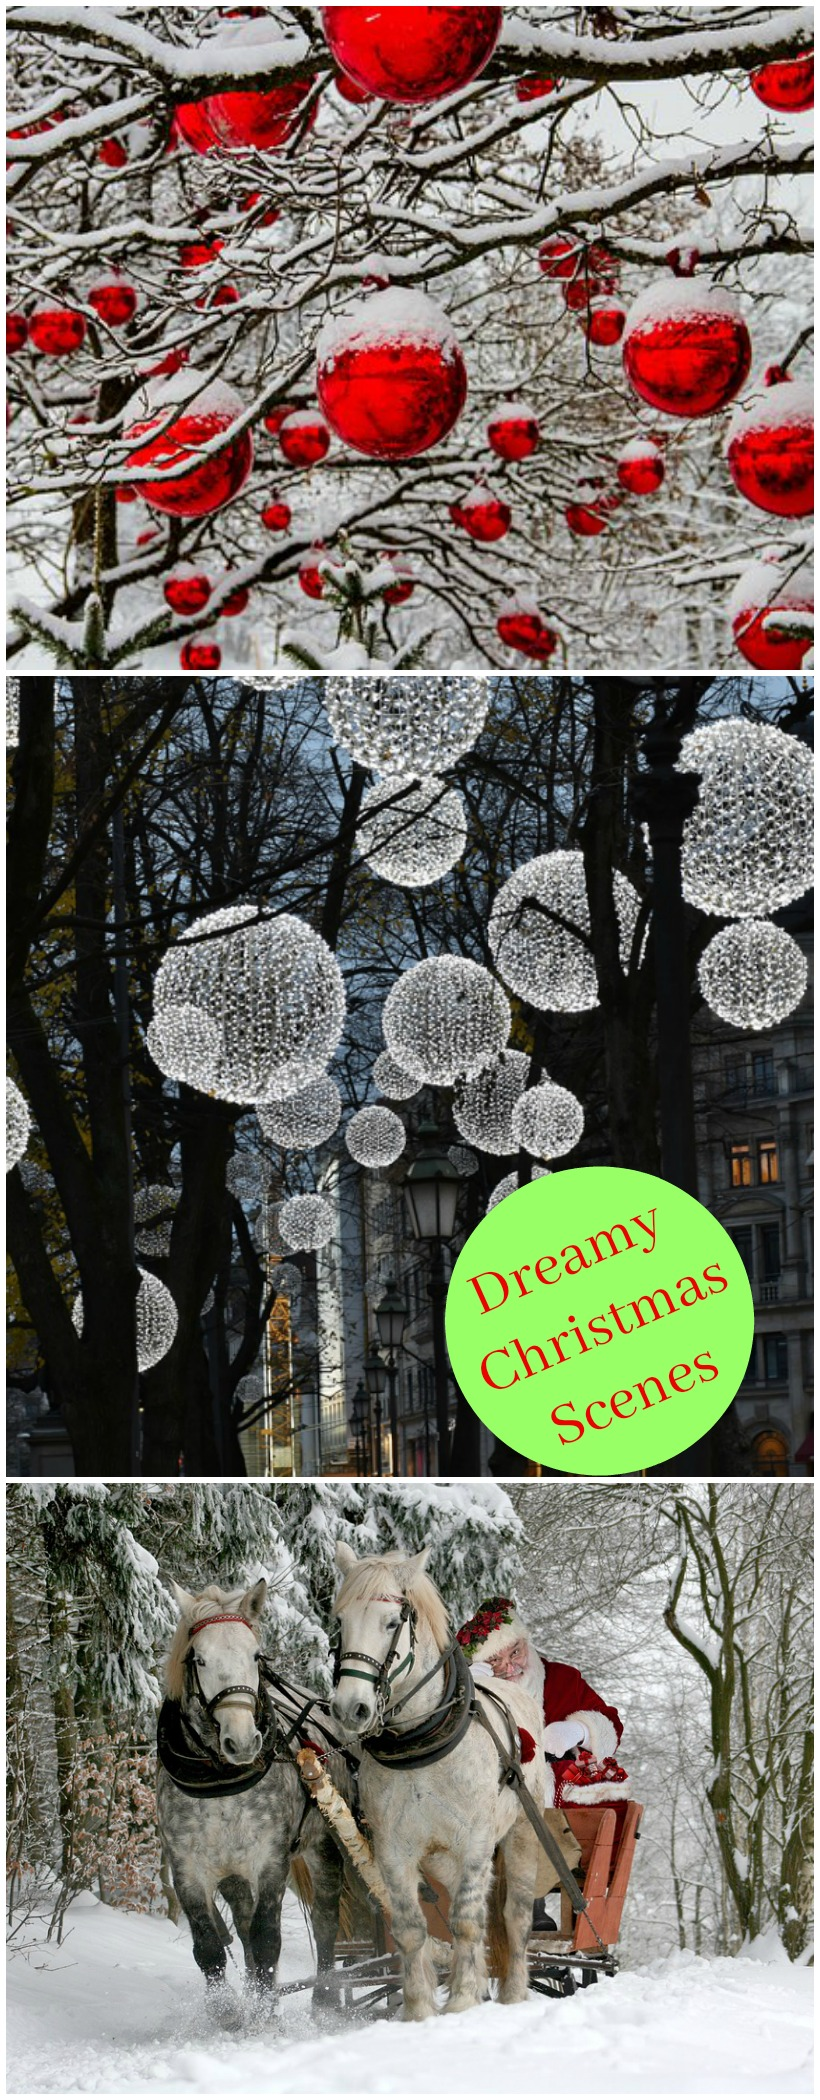 Peaceful, beautiful dreamy christmas scenes to get you in the Christmas spirit! on chemistrycachet.com